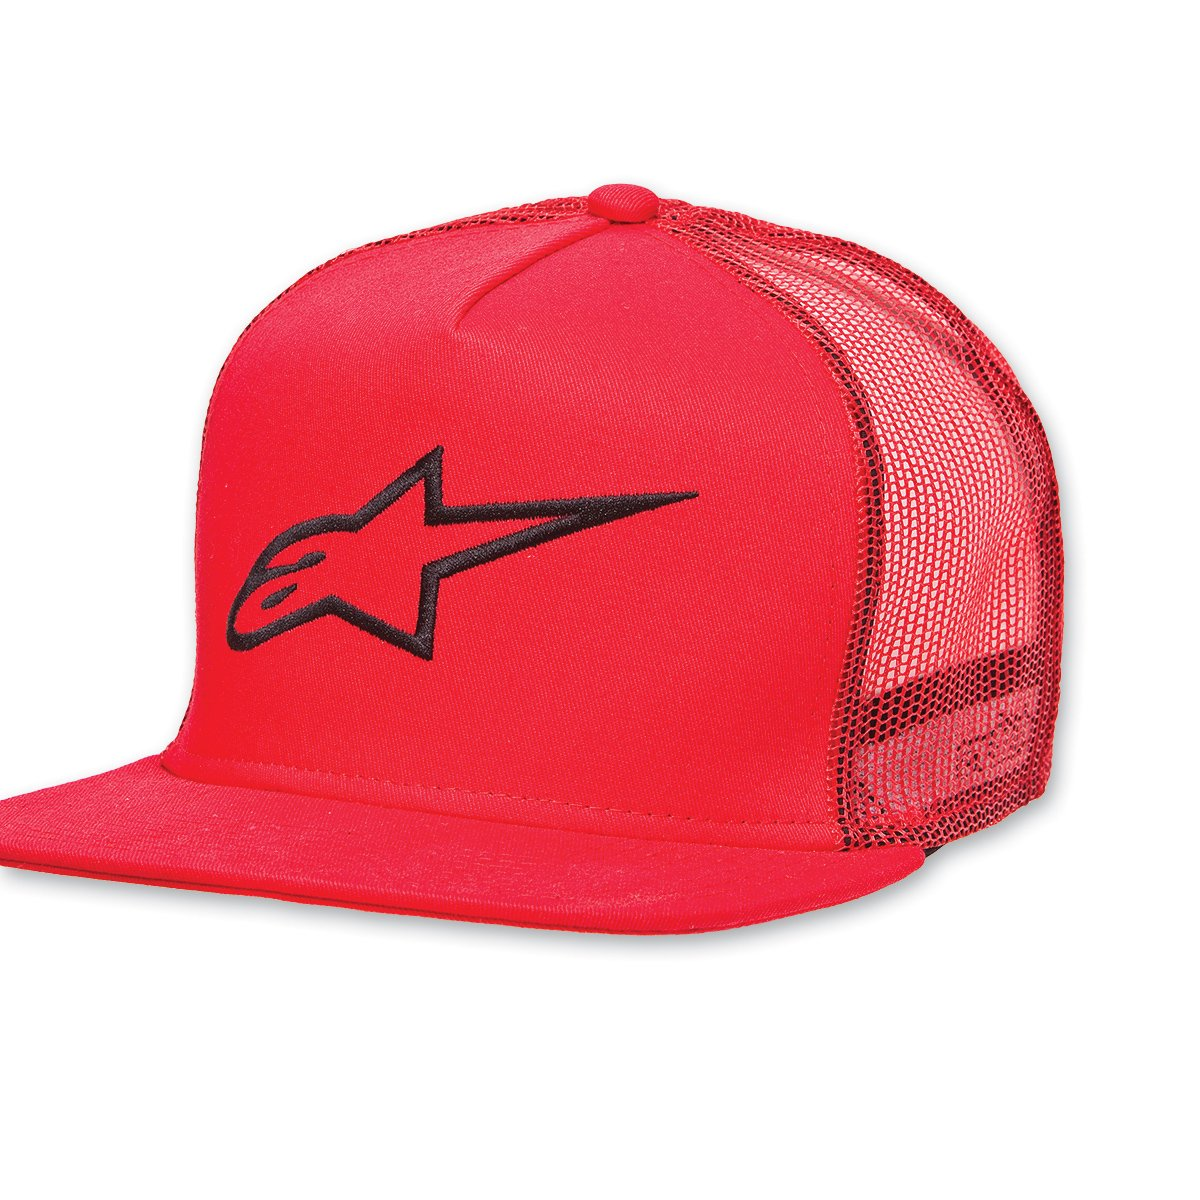 One Size Fits Most Alpinestars Corp Trucker Red Hat